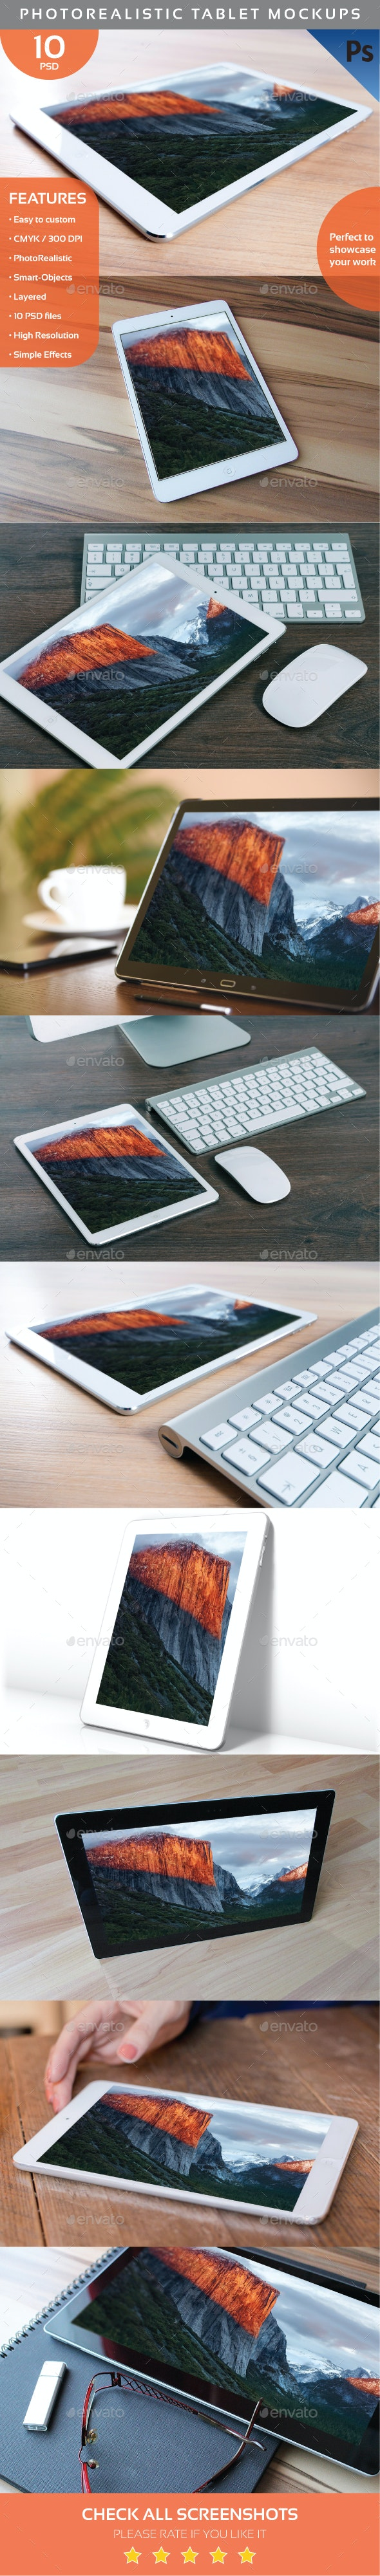 Photorealistic Tablet Mockups  - Displays Product Mock-Ups